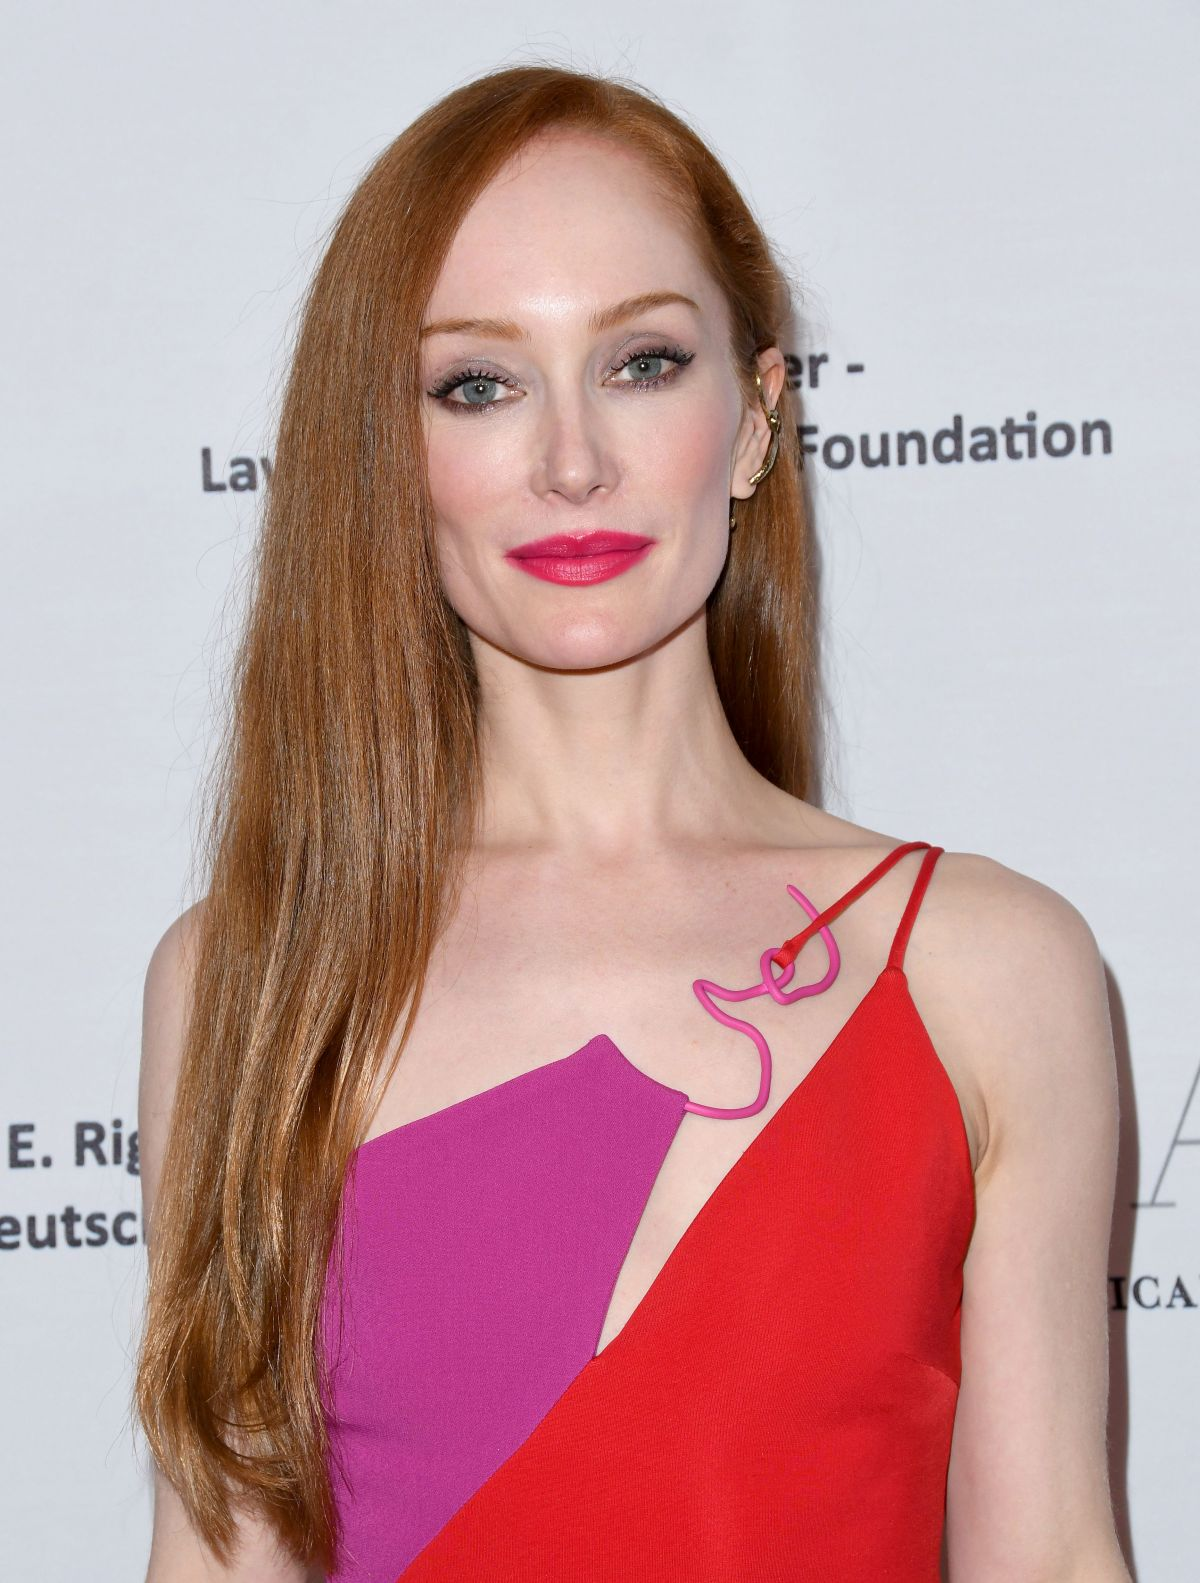 2019 Lotte Verbeek nude (56 foto and video), Pussy, Cleavage, Feet, swimsuit 2020